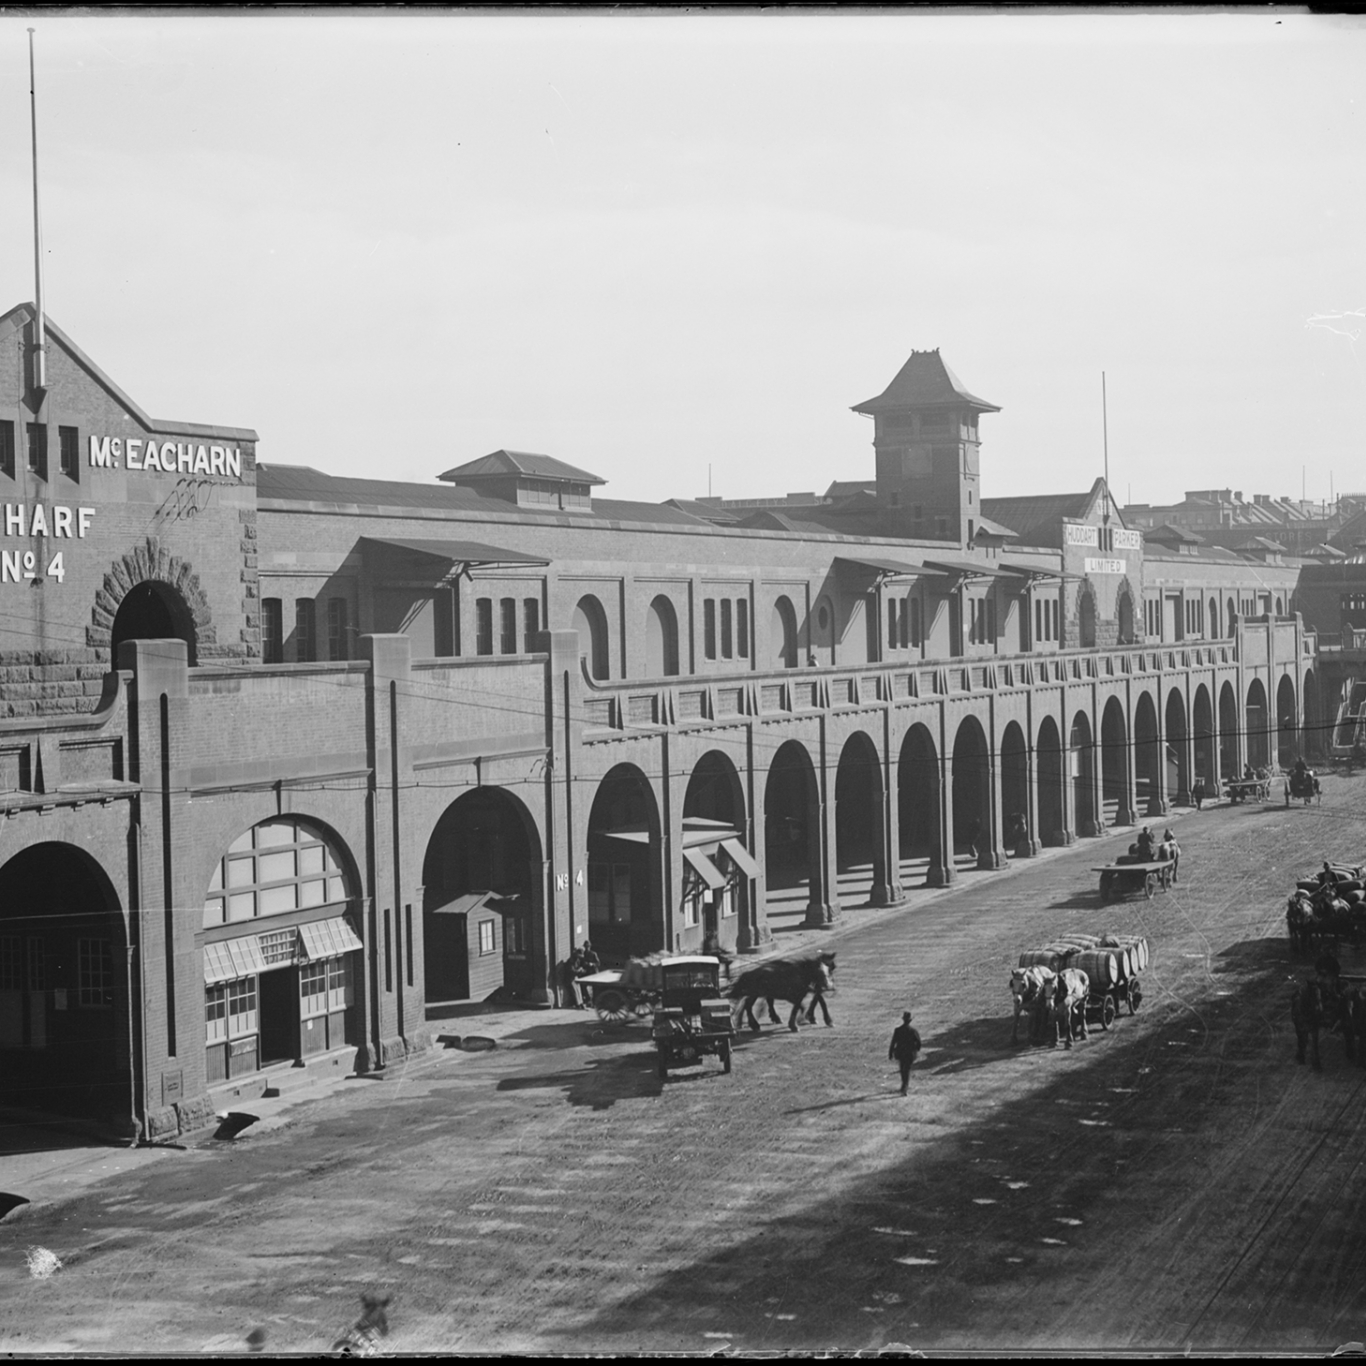 Black and white photograph looking along arched front of two storey wharf building.